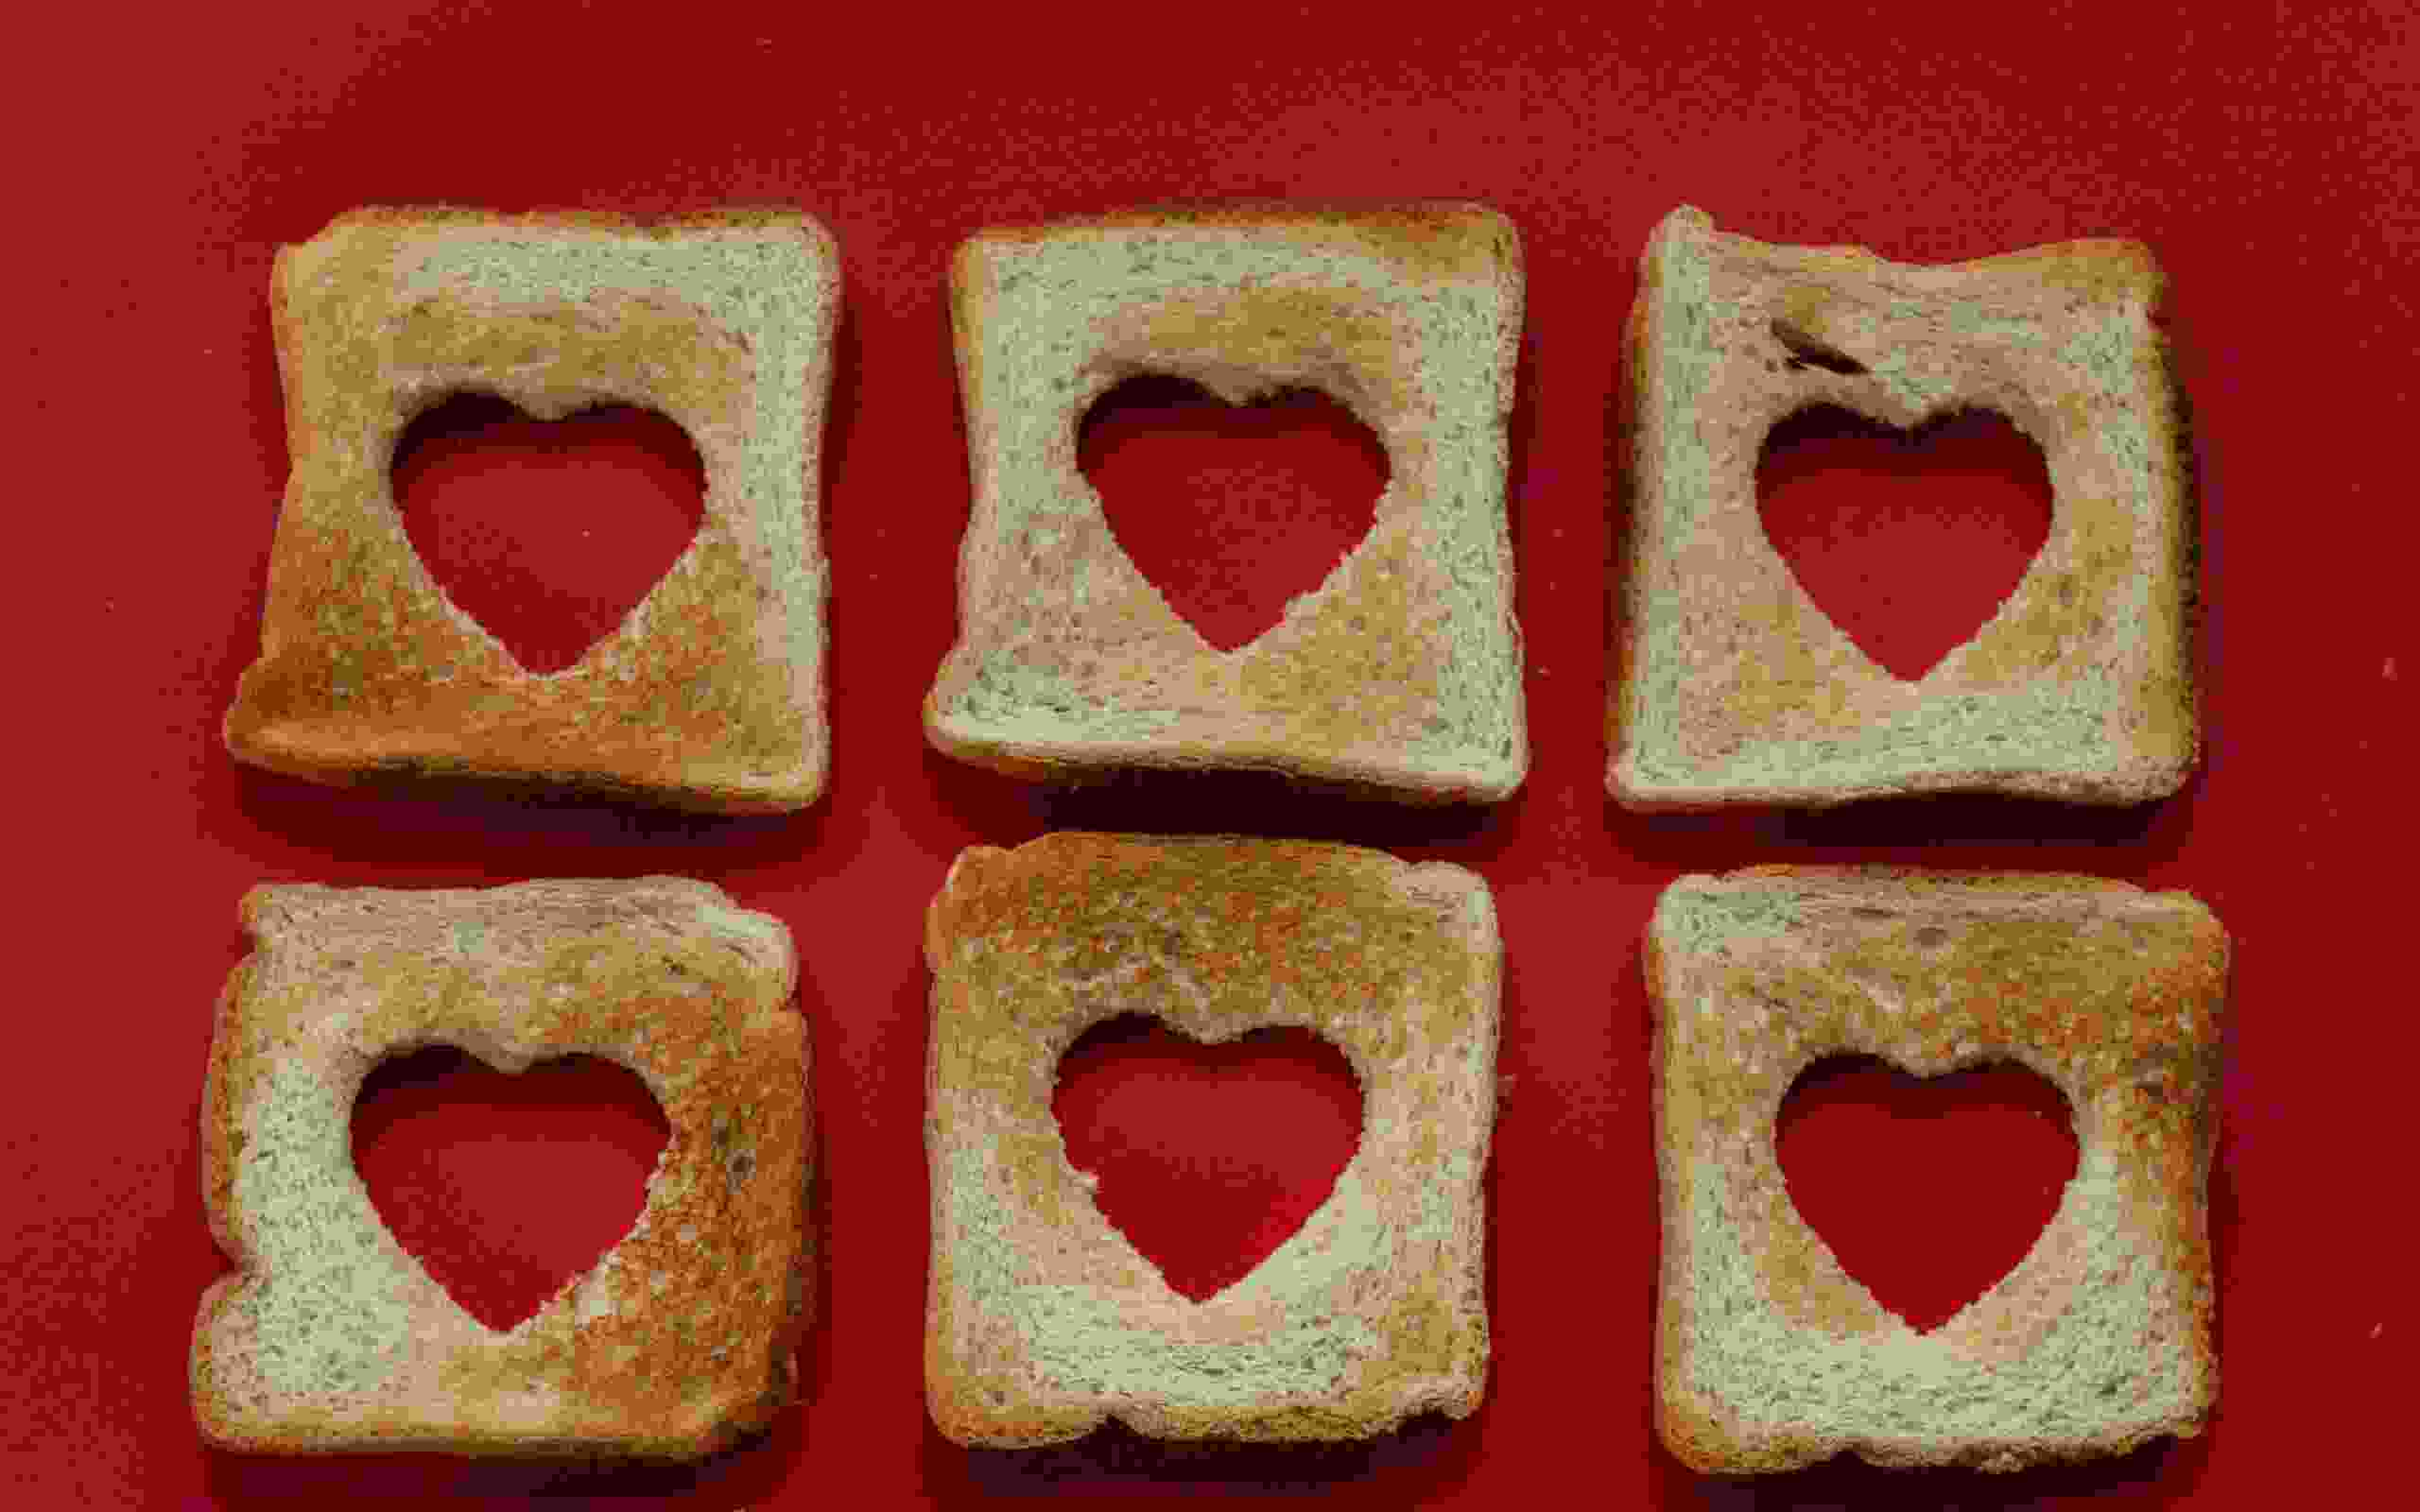 Sliced bread with hearts